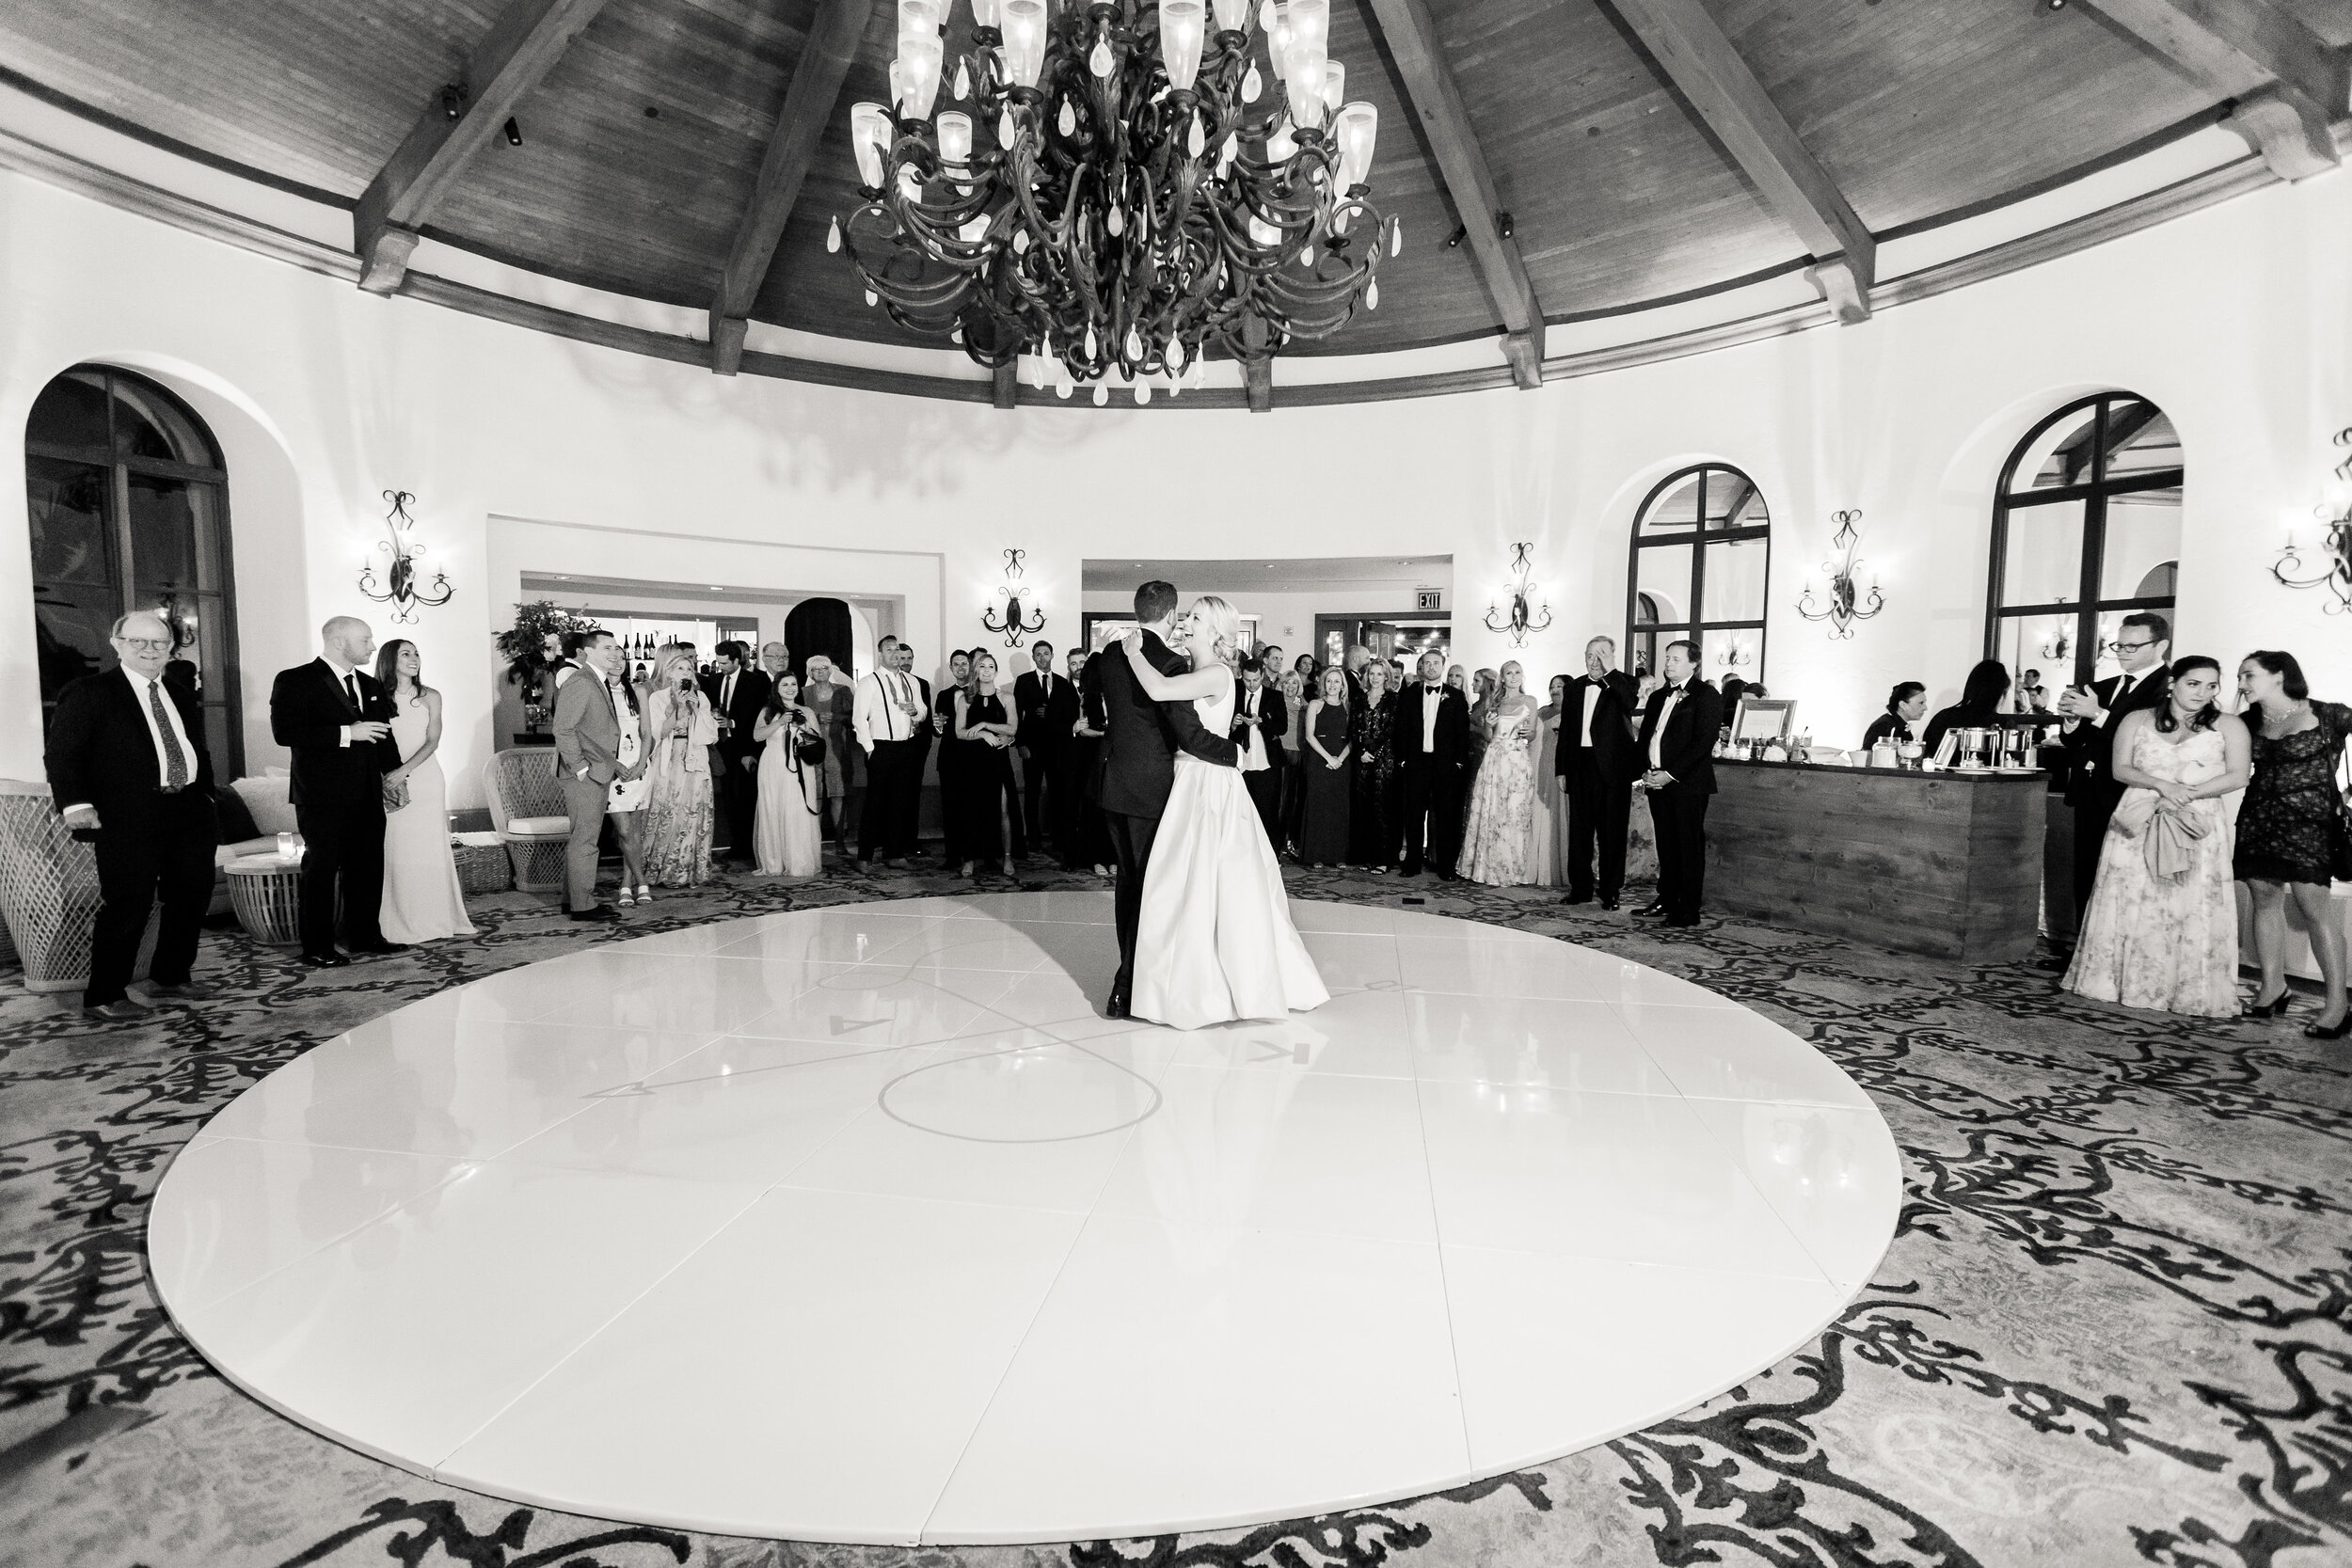 First dance as husband and wife on a custom seamless round dance floor with their logo in blush pink